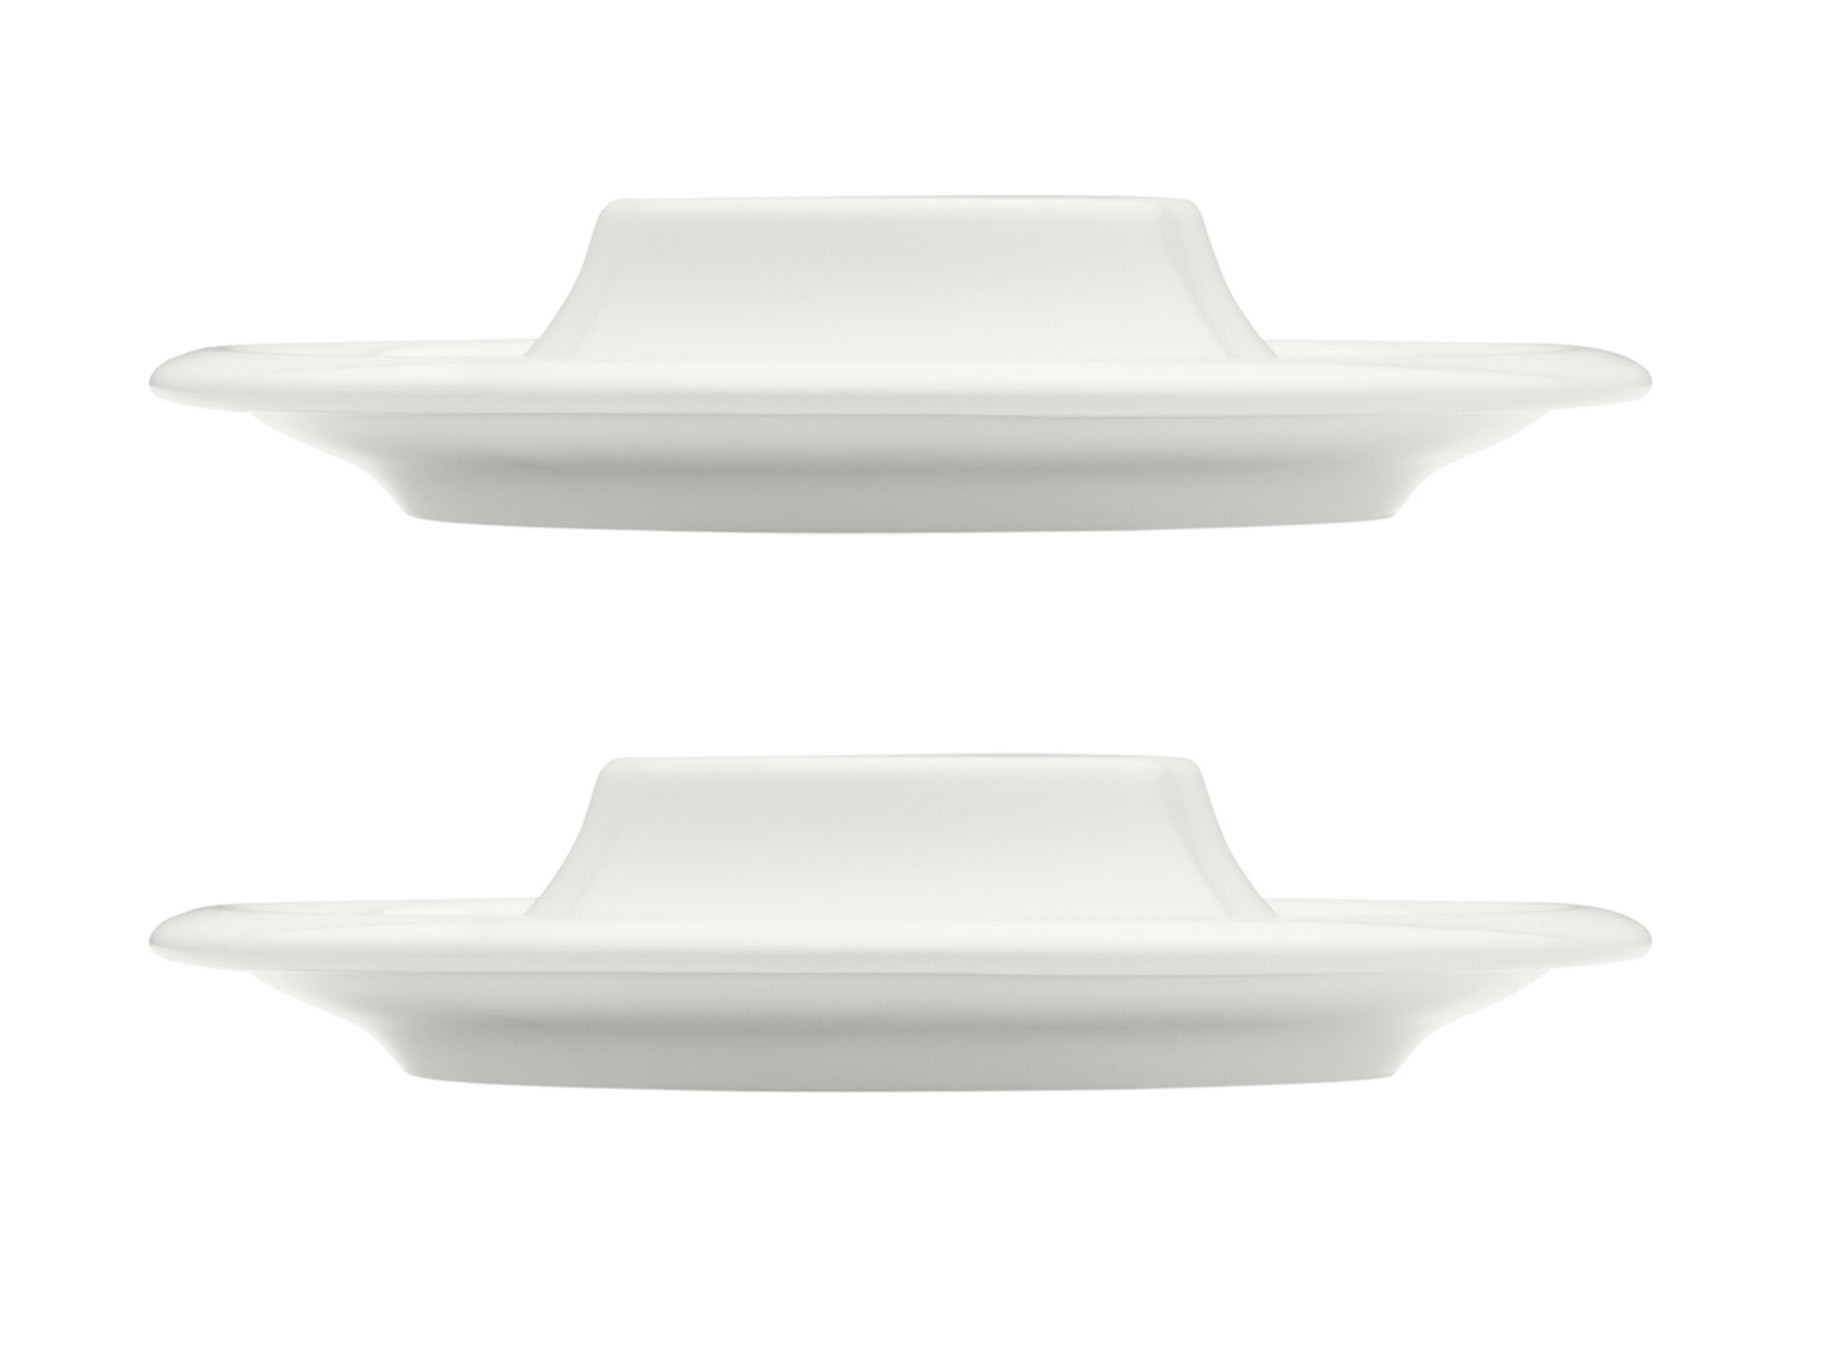 Iittala Raami Egg Cup (Set of 2)